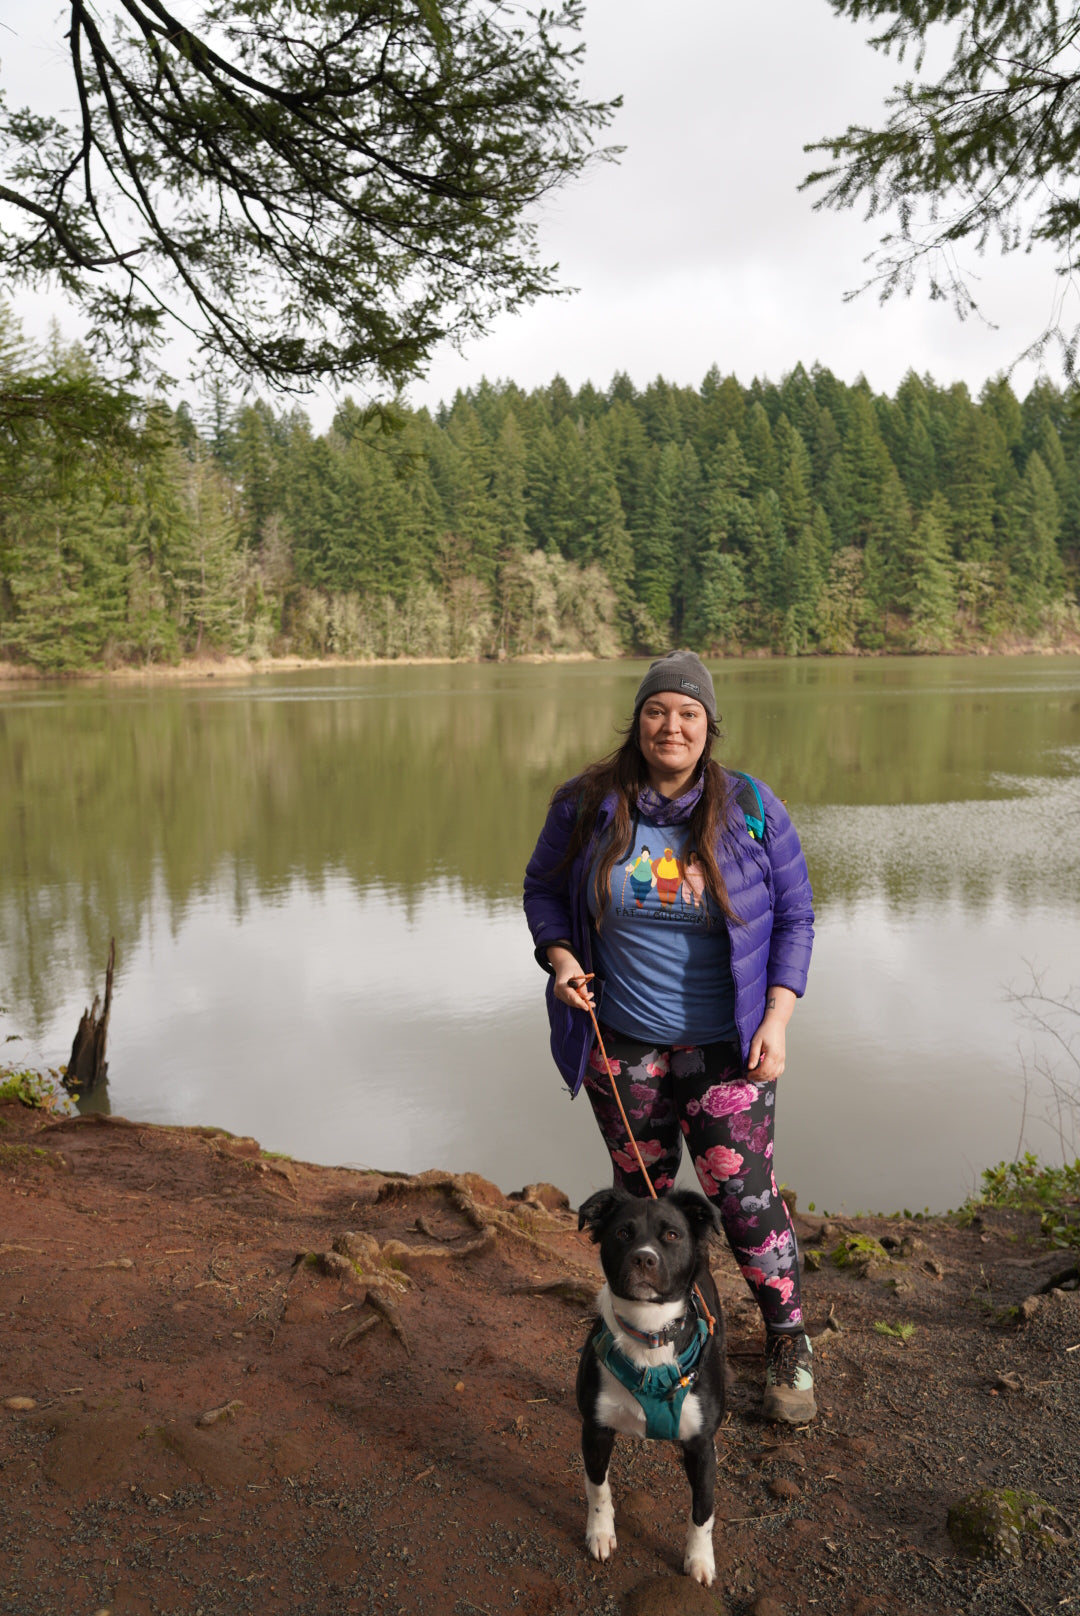 Jenny Bruso with dog in Flagline harness by the water on a hike.